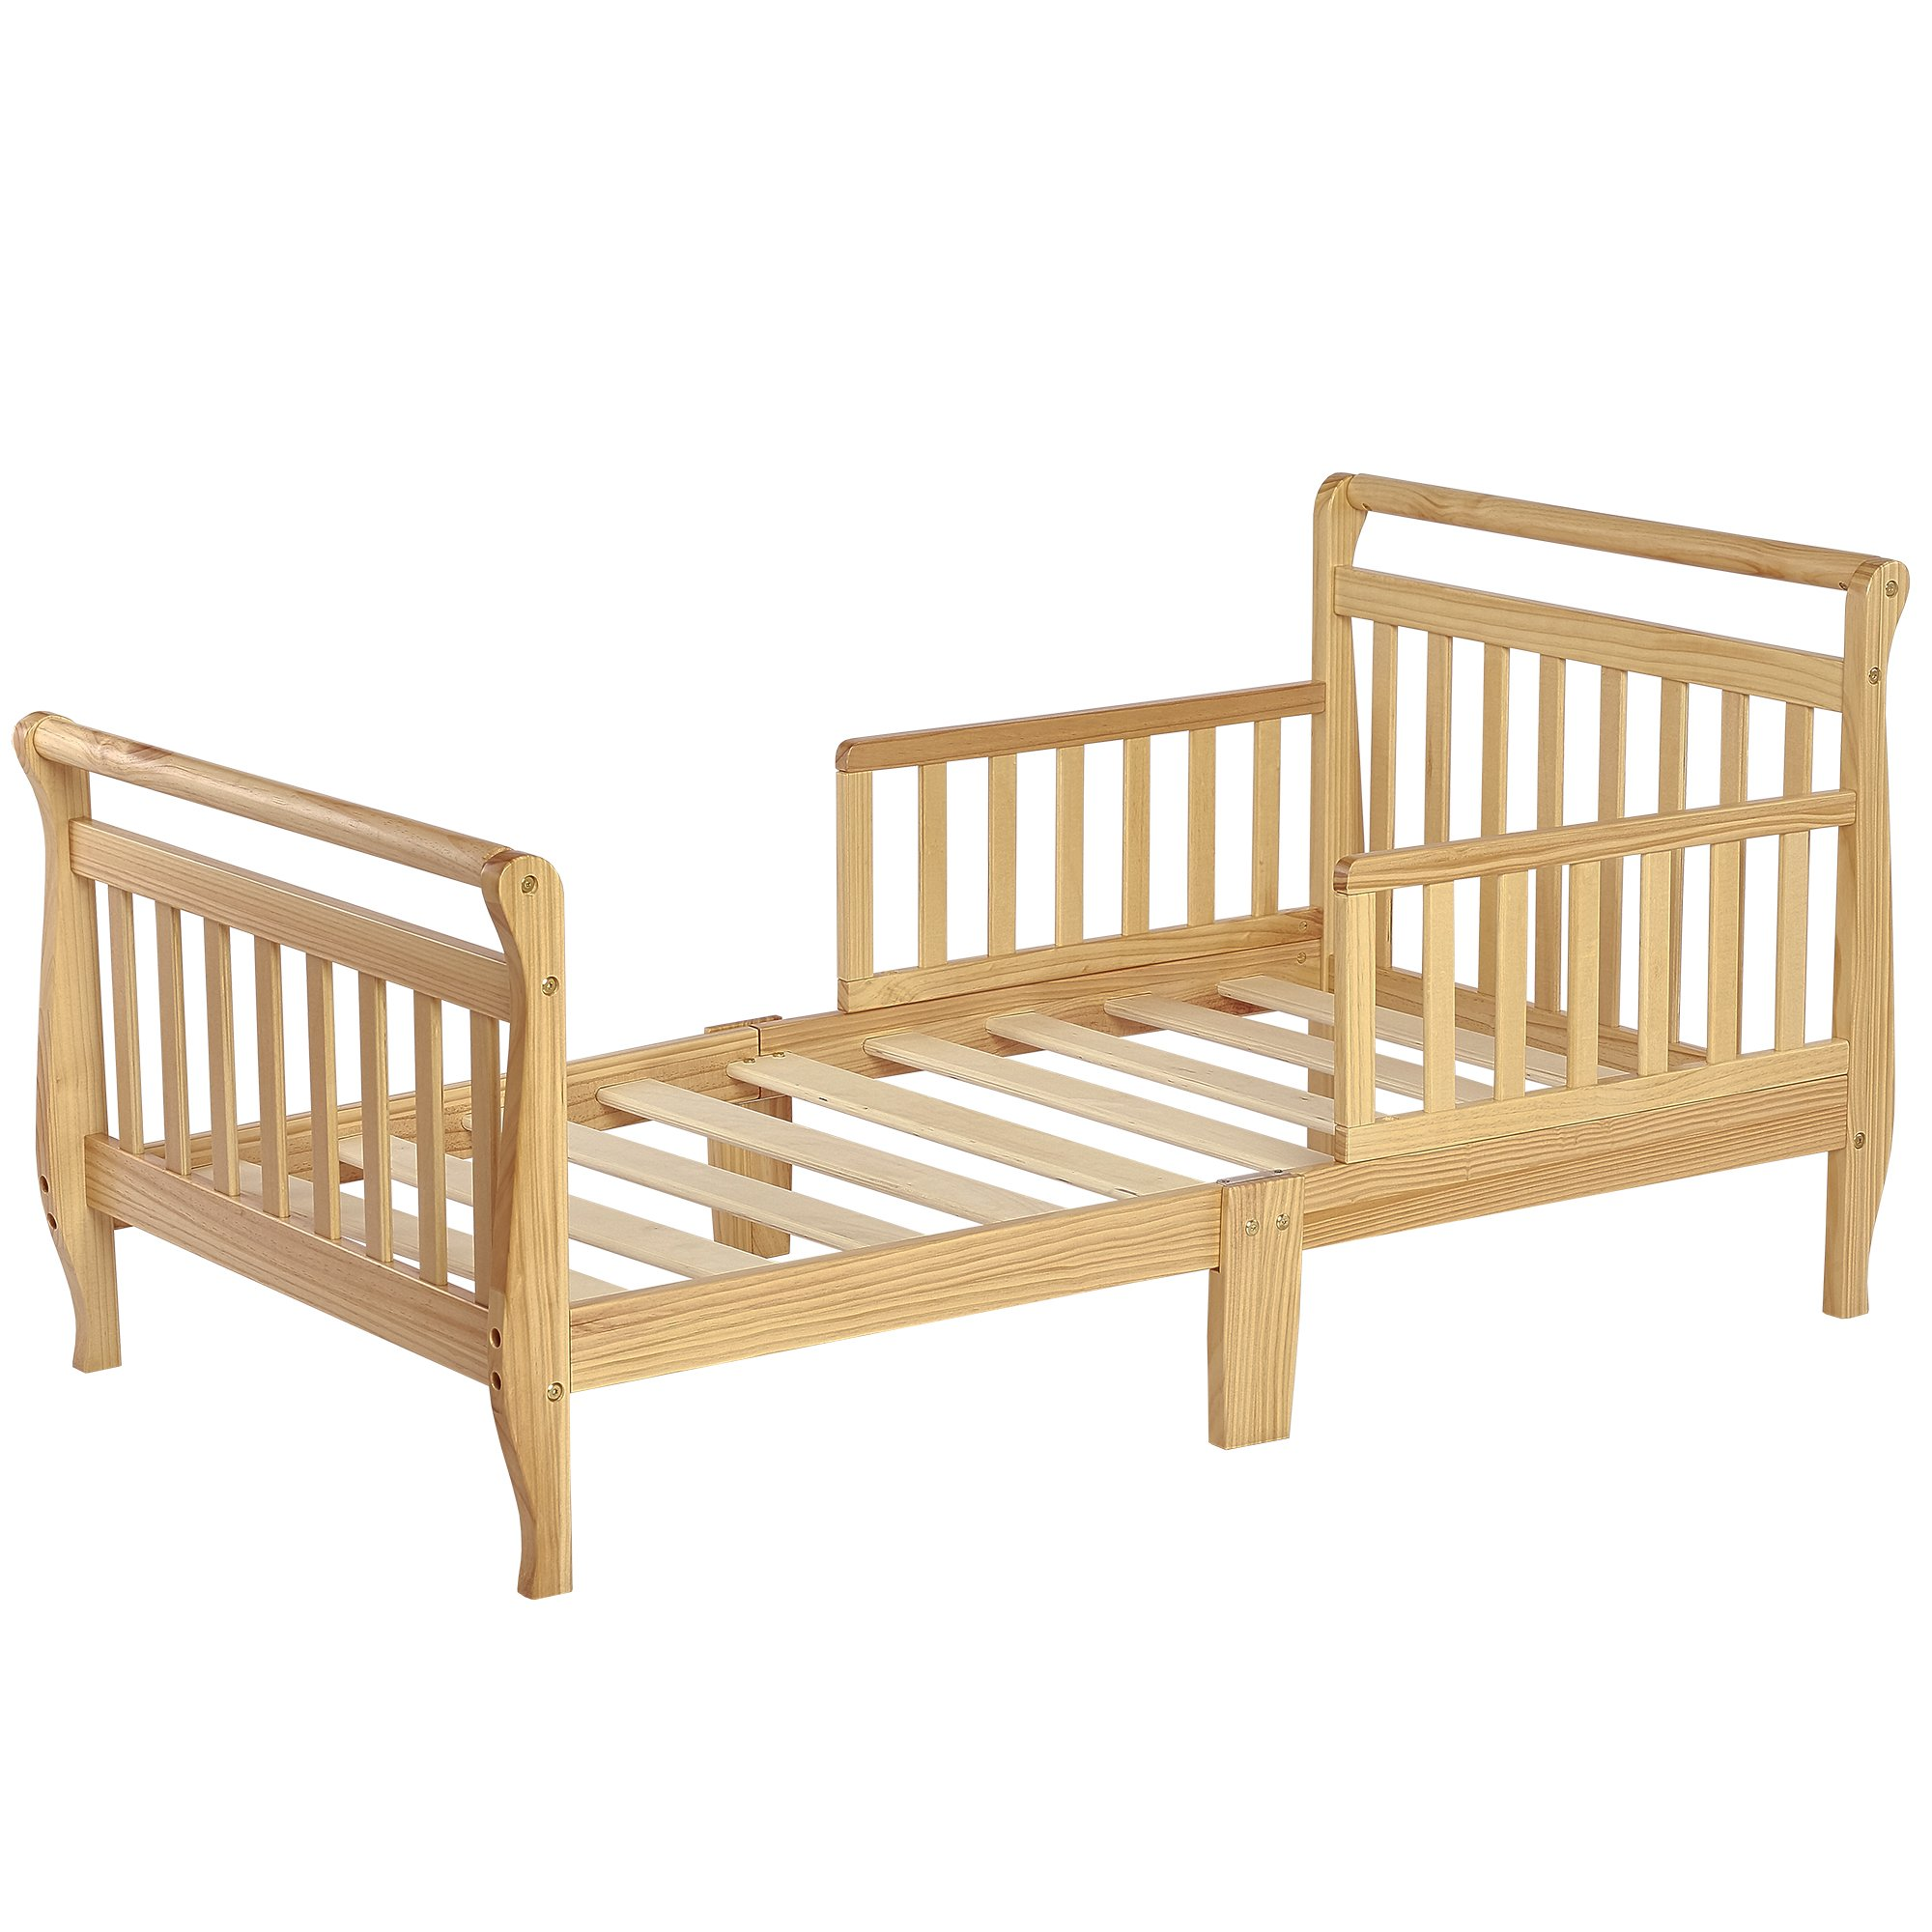 Dream On Me Classic Sleigh Toddler Bed - Natural